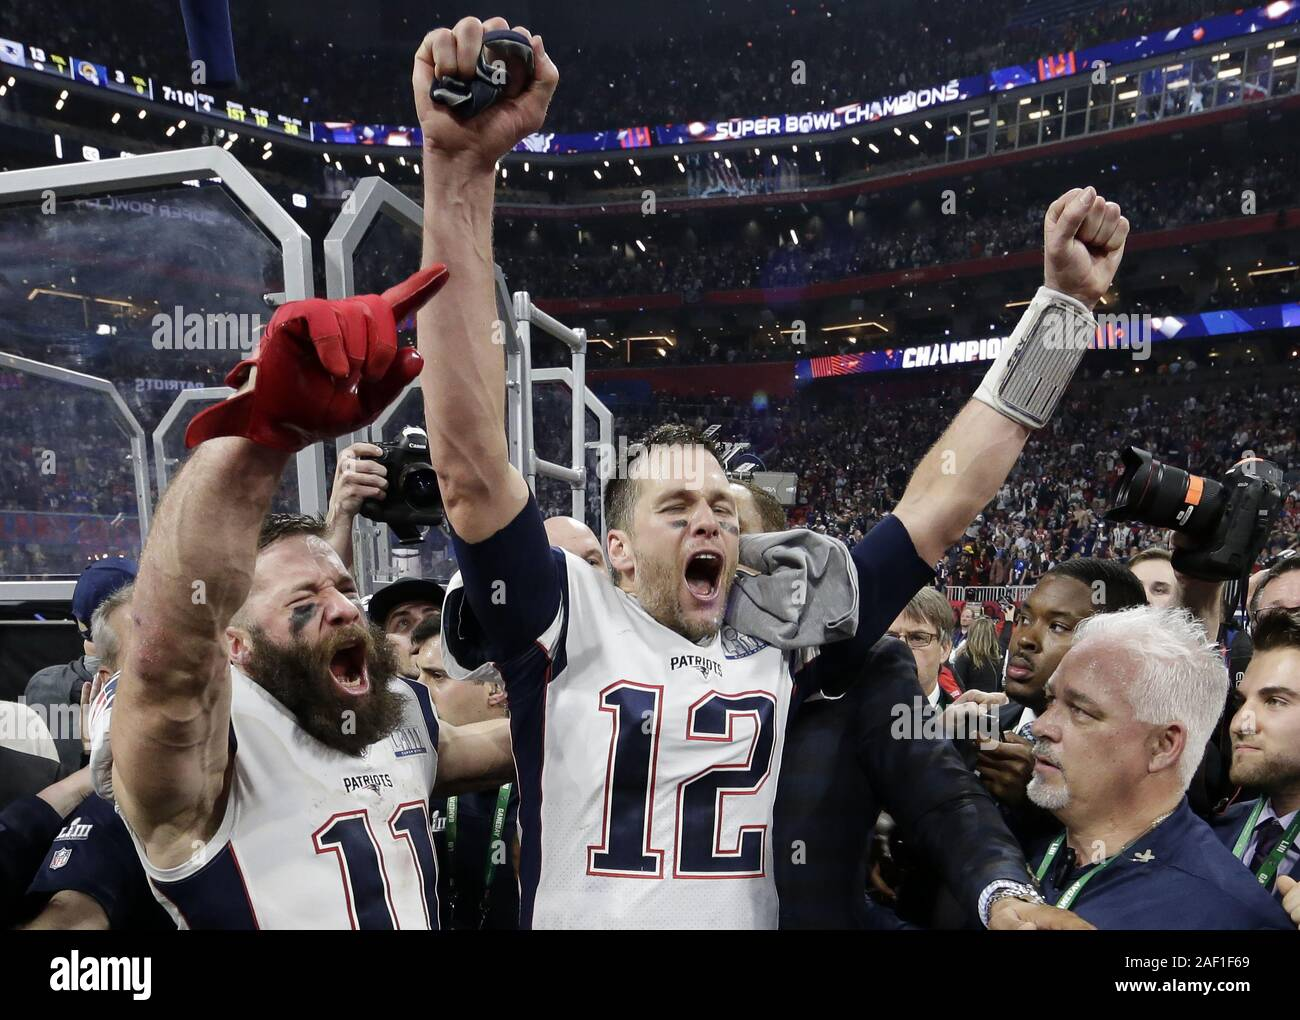 Super Bowl Win 2019 High Resolution Stock Photography And Images Alamy